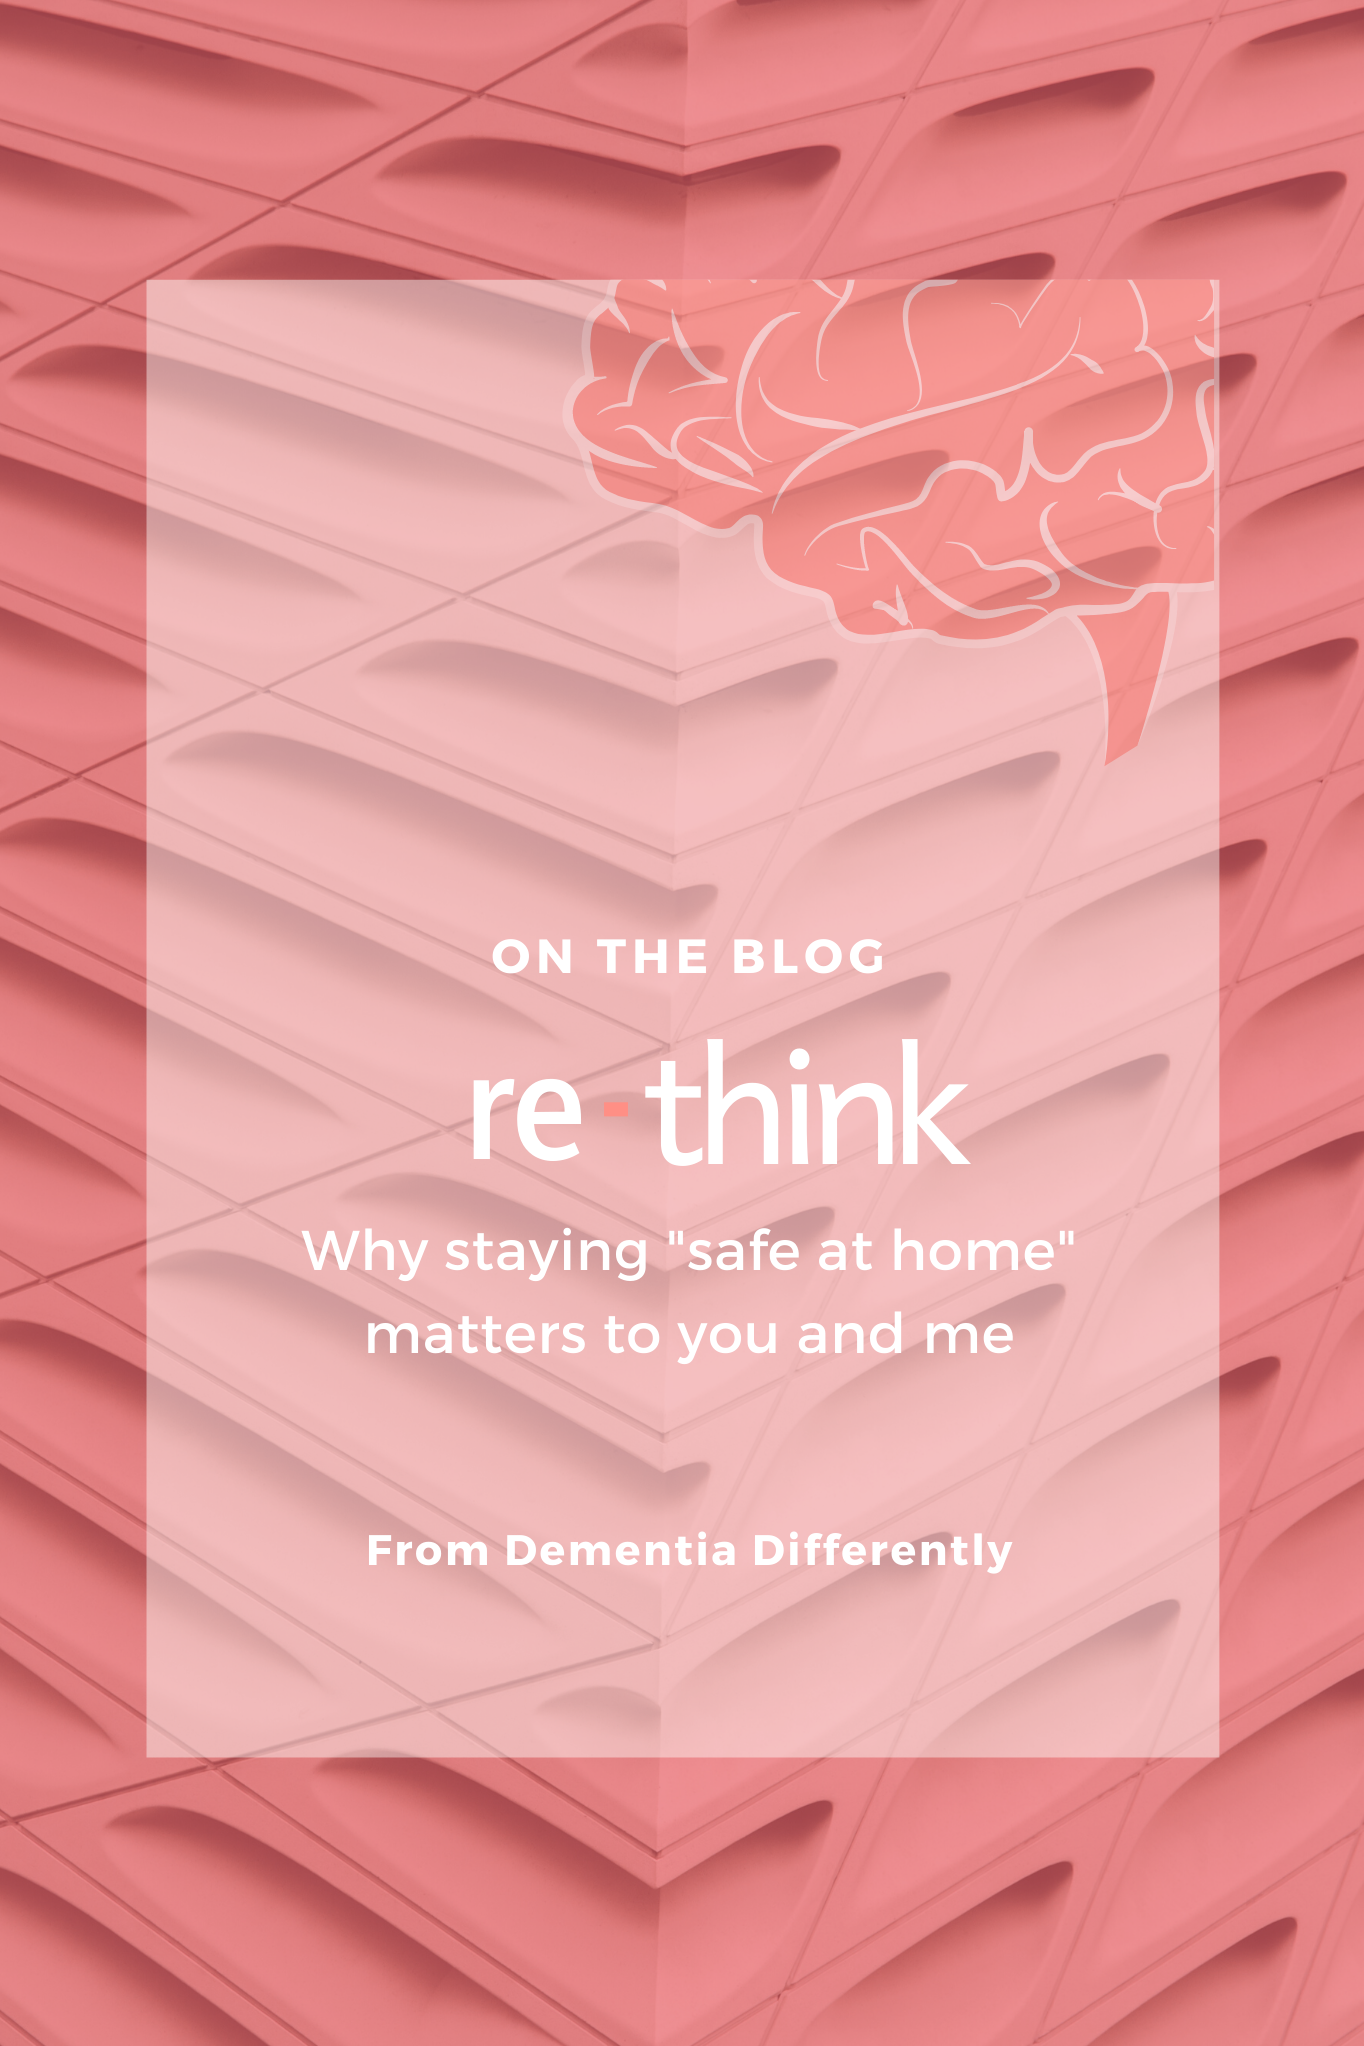 re-think: Why staying 'safe at home' matters to you and me